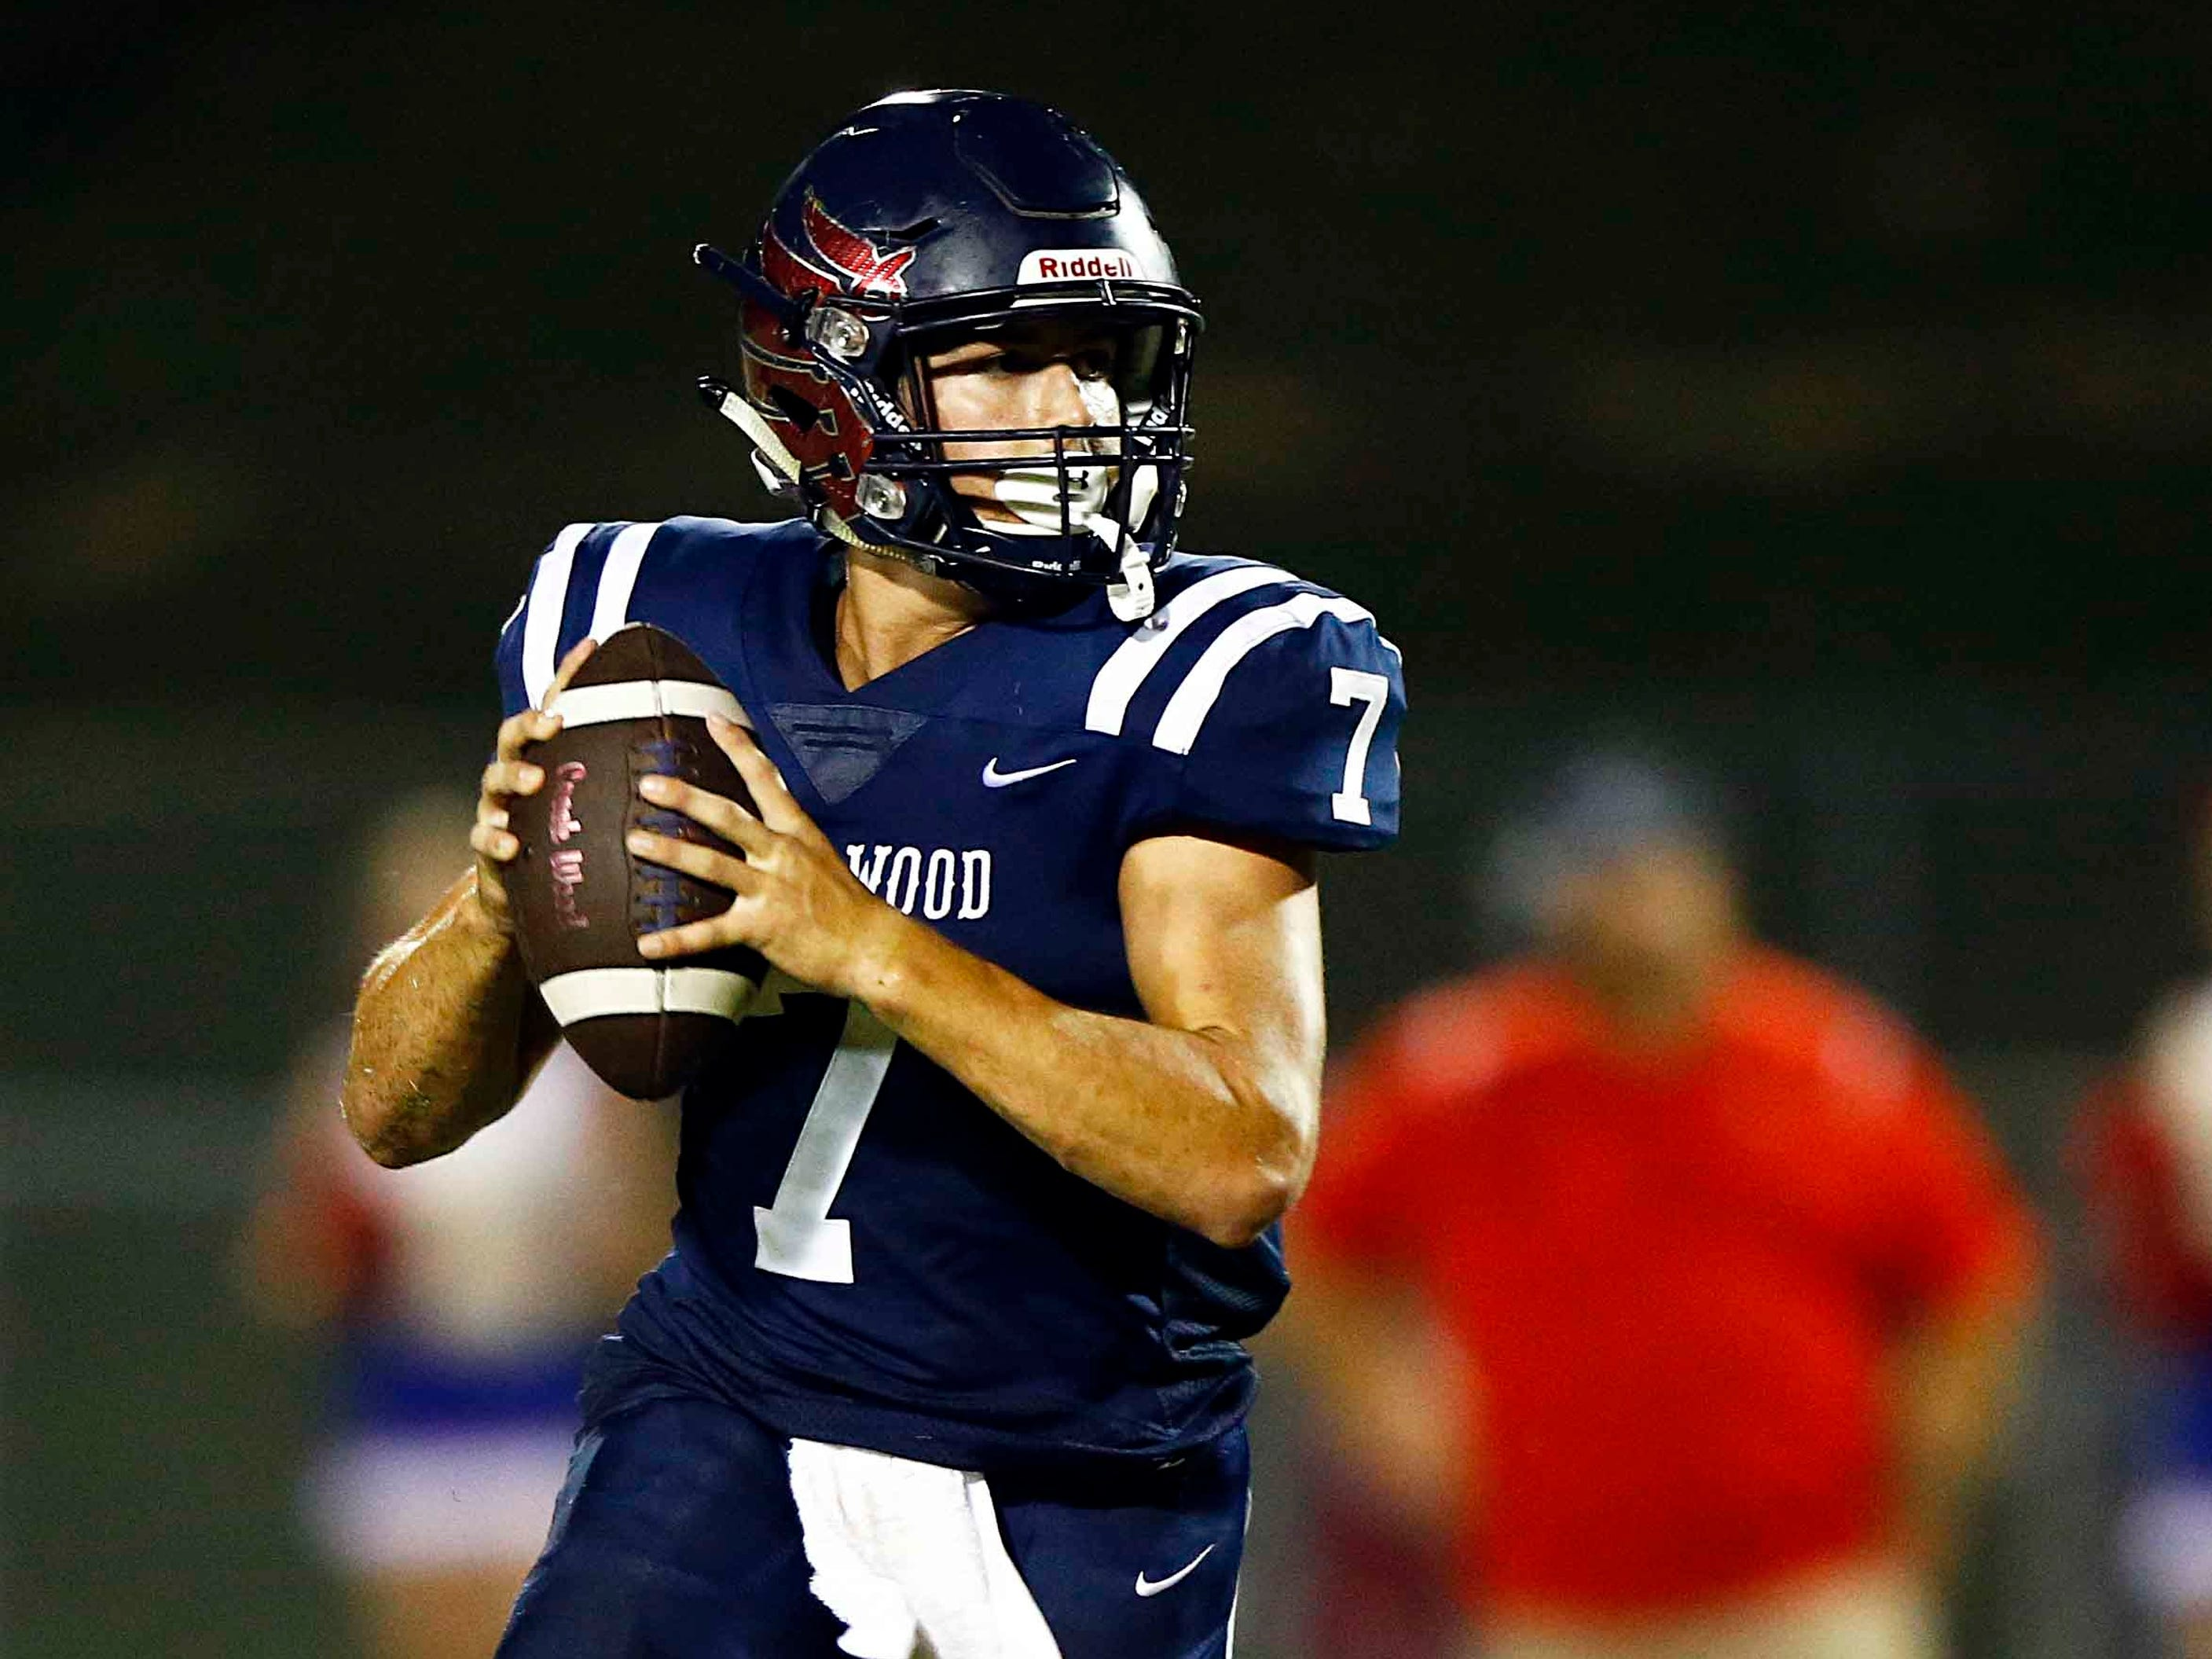 Creek Wood's Mitch Duke rolls out to pass during their game against Montgomery Central Friday, Sept. 14, 2018, in Charlotte, Tenn.